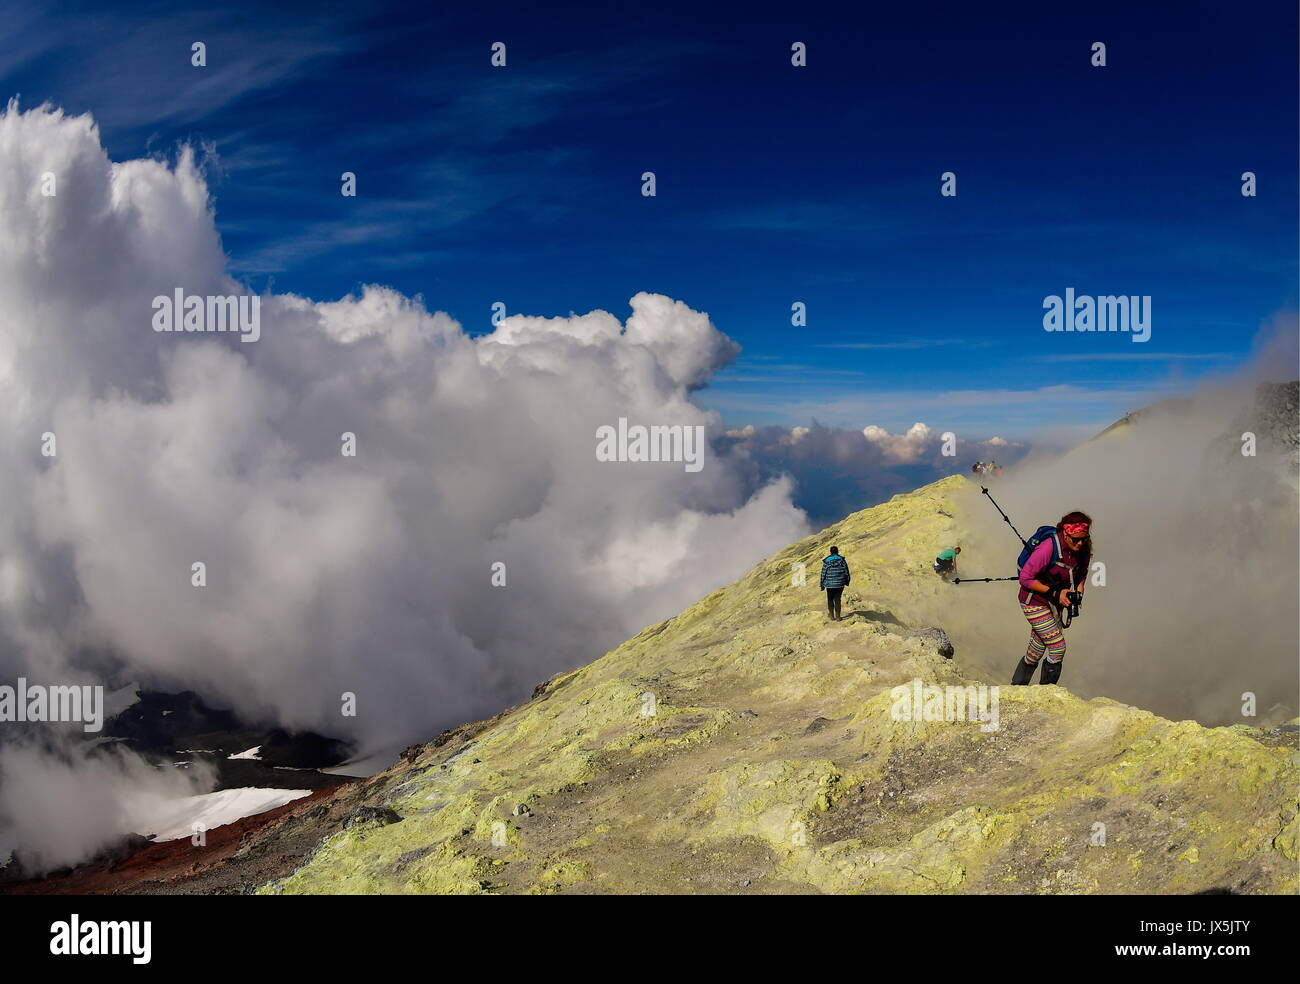 Kamchatka Territory, Russia. 12th Aug, 2017. Tourists at the crater of Avachinsky active stratovolcano. Credit: Stock Photo